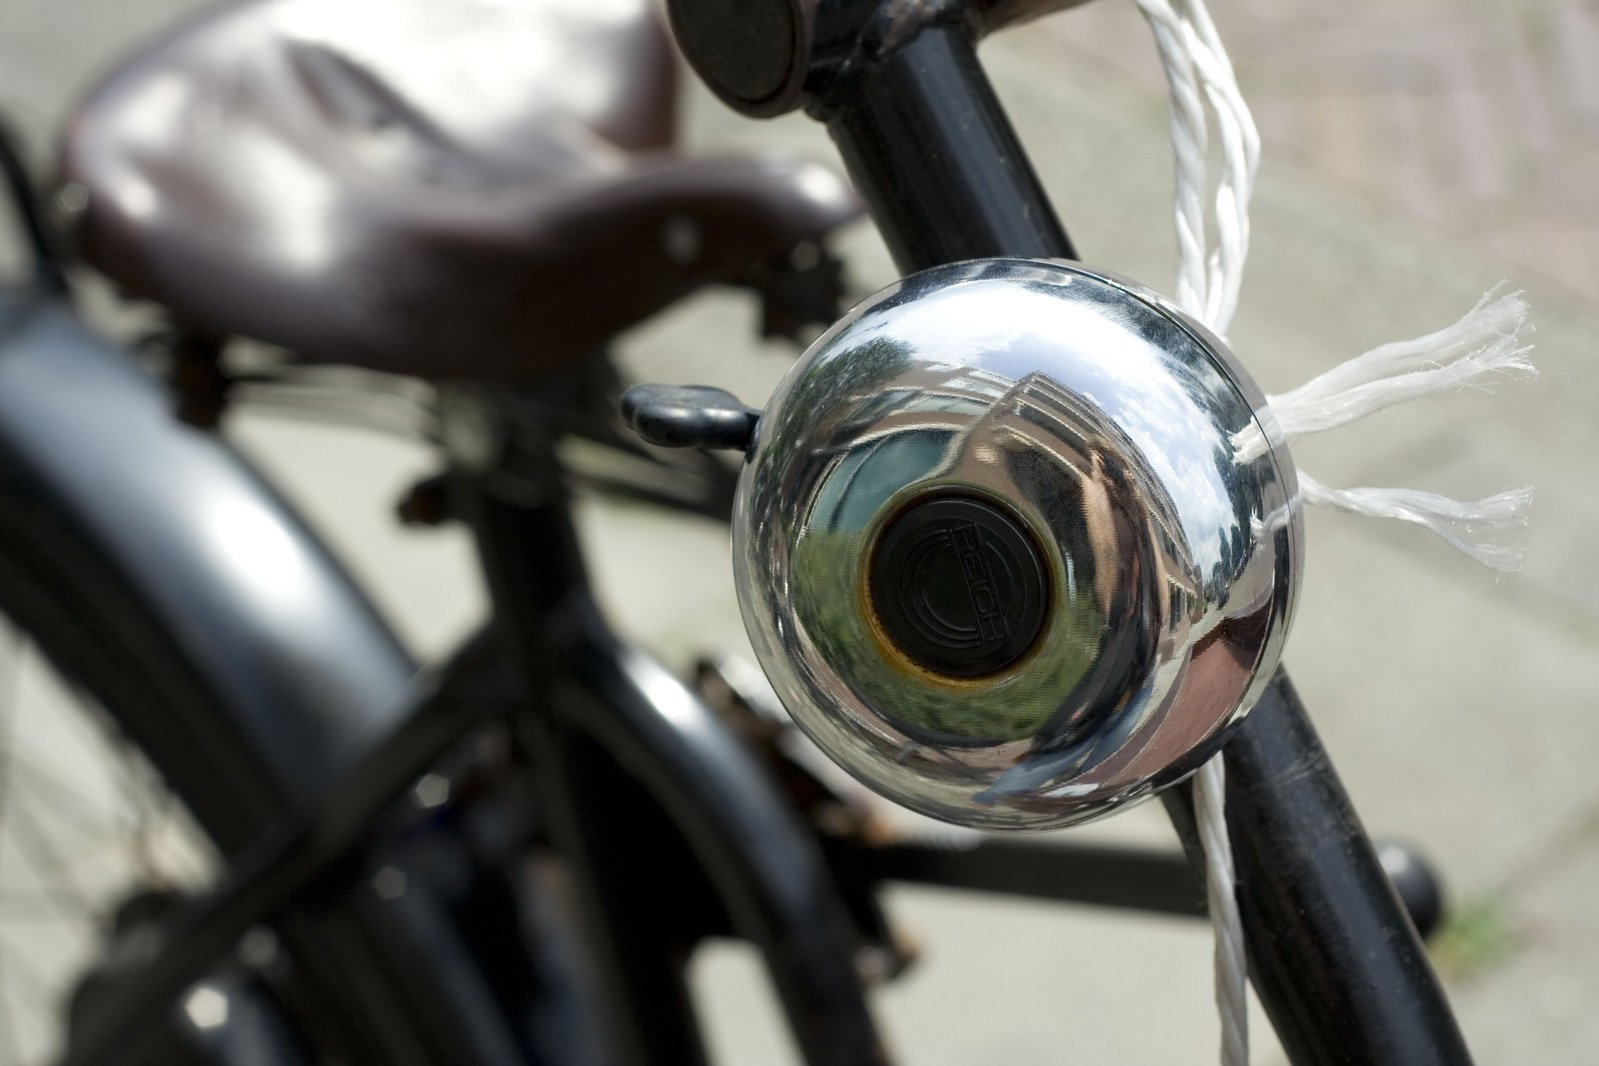 Bicycle bell 1